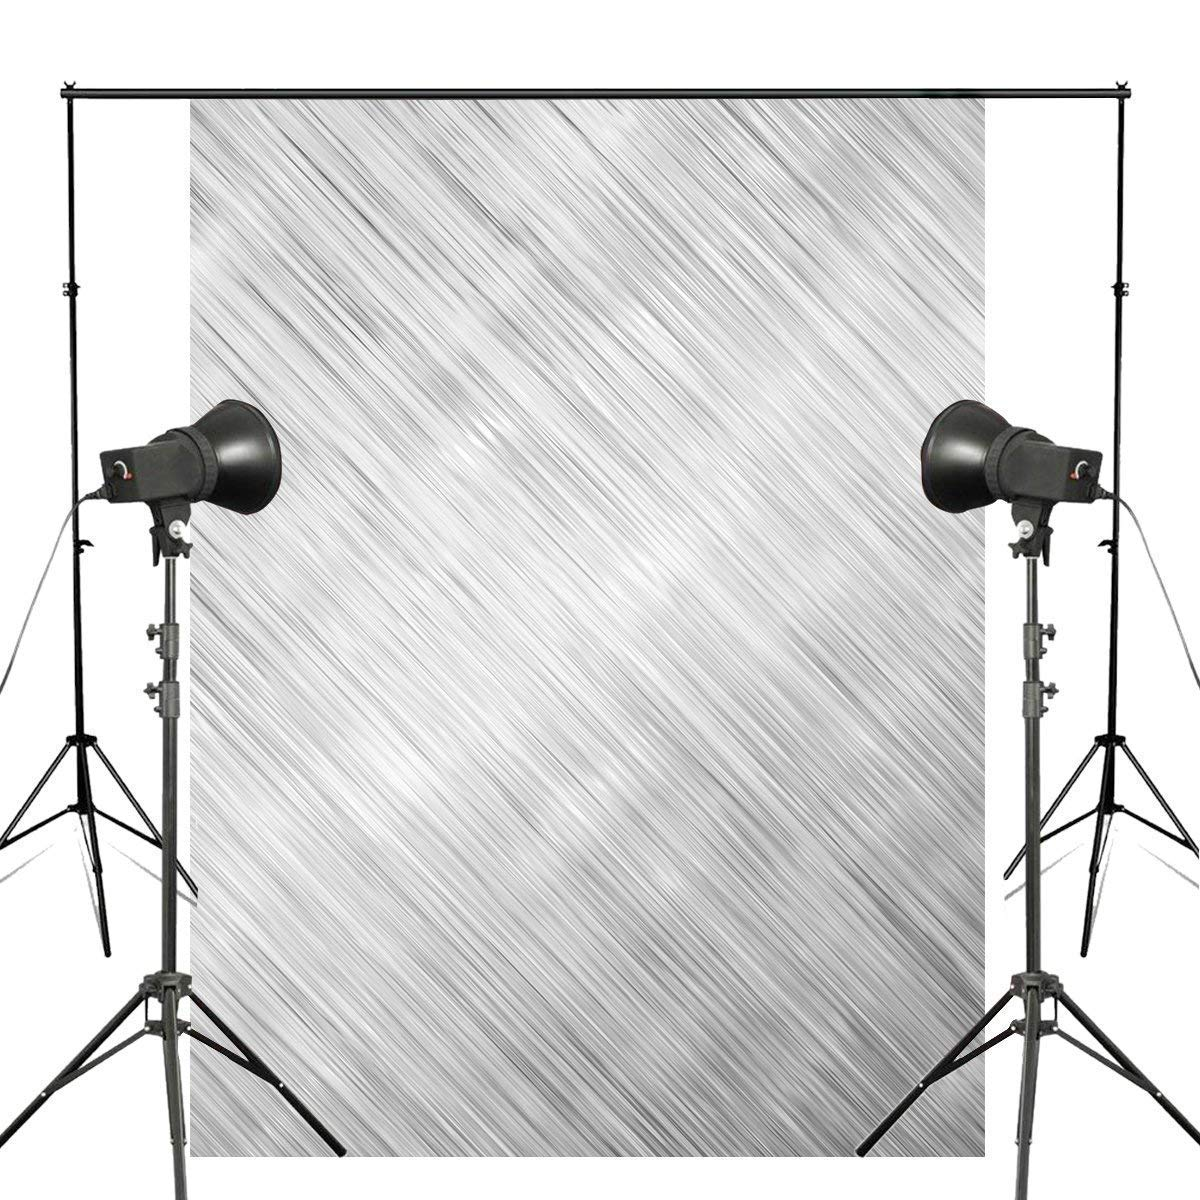 ERTIANANG 5x7ft Abstract Brushed Metal Photography Backdrops Gray Line Backdrop Art Photo Studio Photography Background Wall